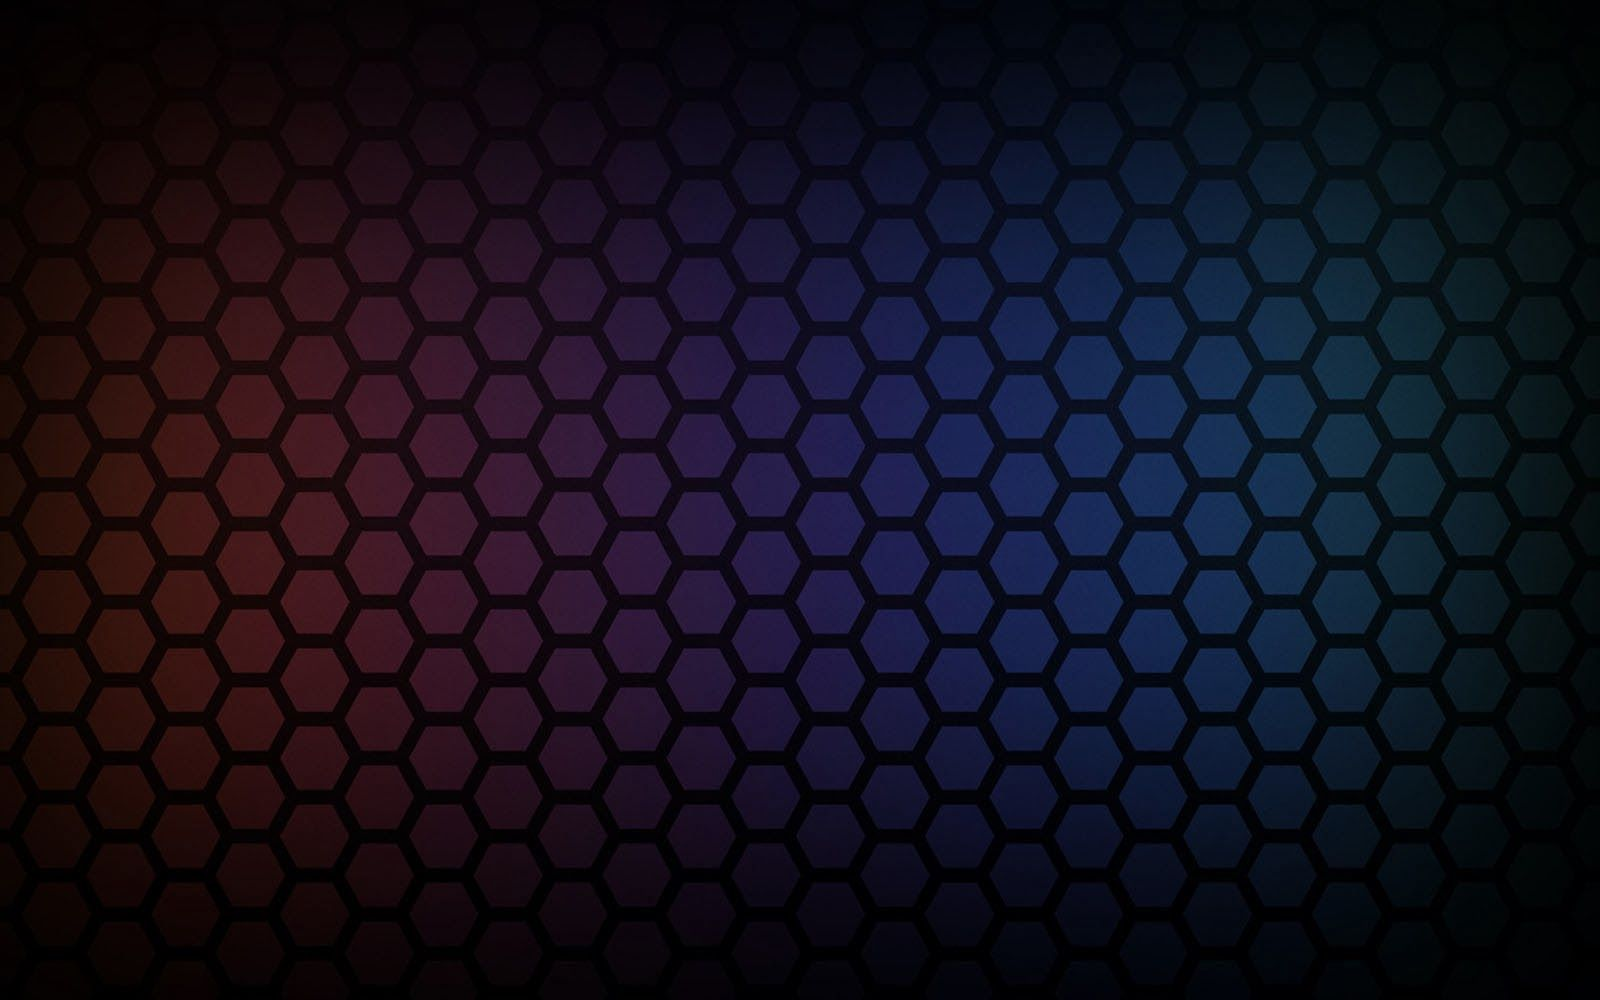 Honeycomb wallpapers background images page 6 - Honeycomb Wallpaper Quality Honeycomb Hd Images Yxx Full